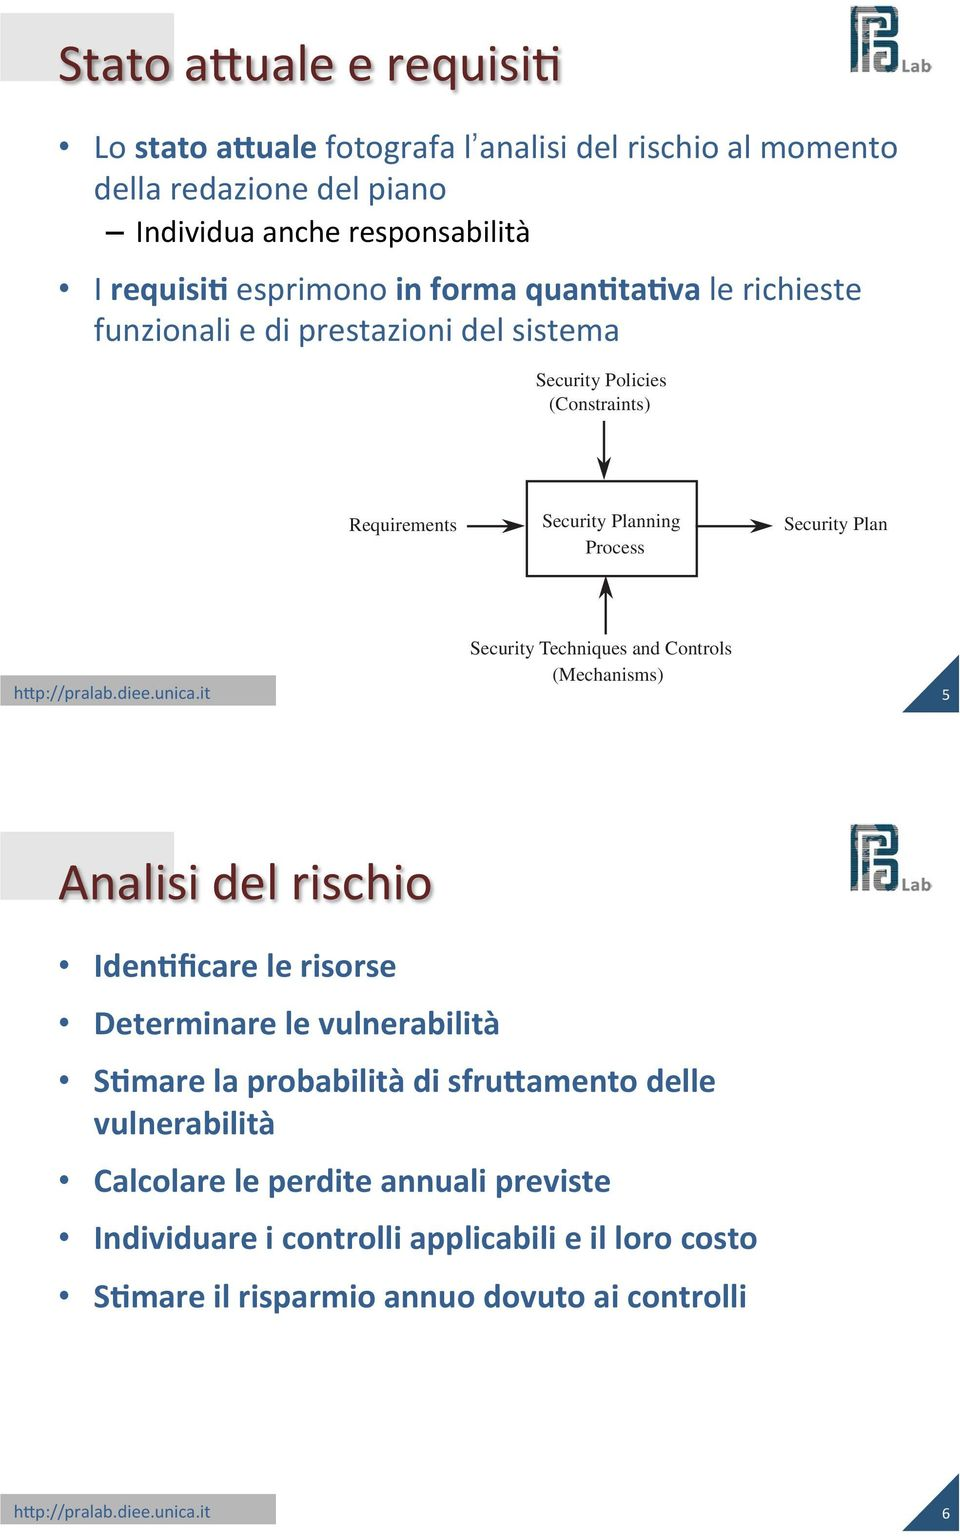 Process Security Plan Security Techniques and Controls (Mechanisms) 5 Analisidelrischio Iden;ficare(le(risorse( Determinare(le(vulnerabilità(